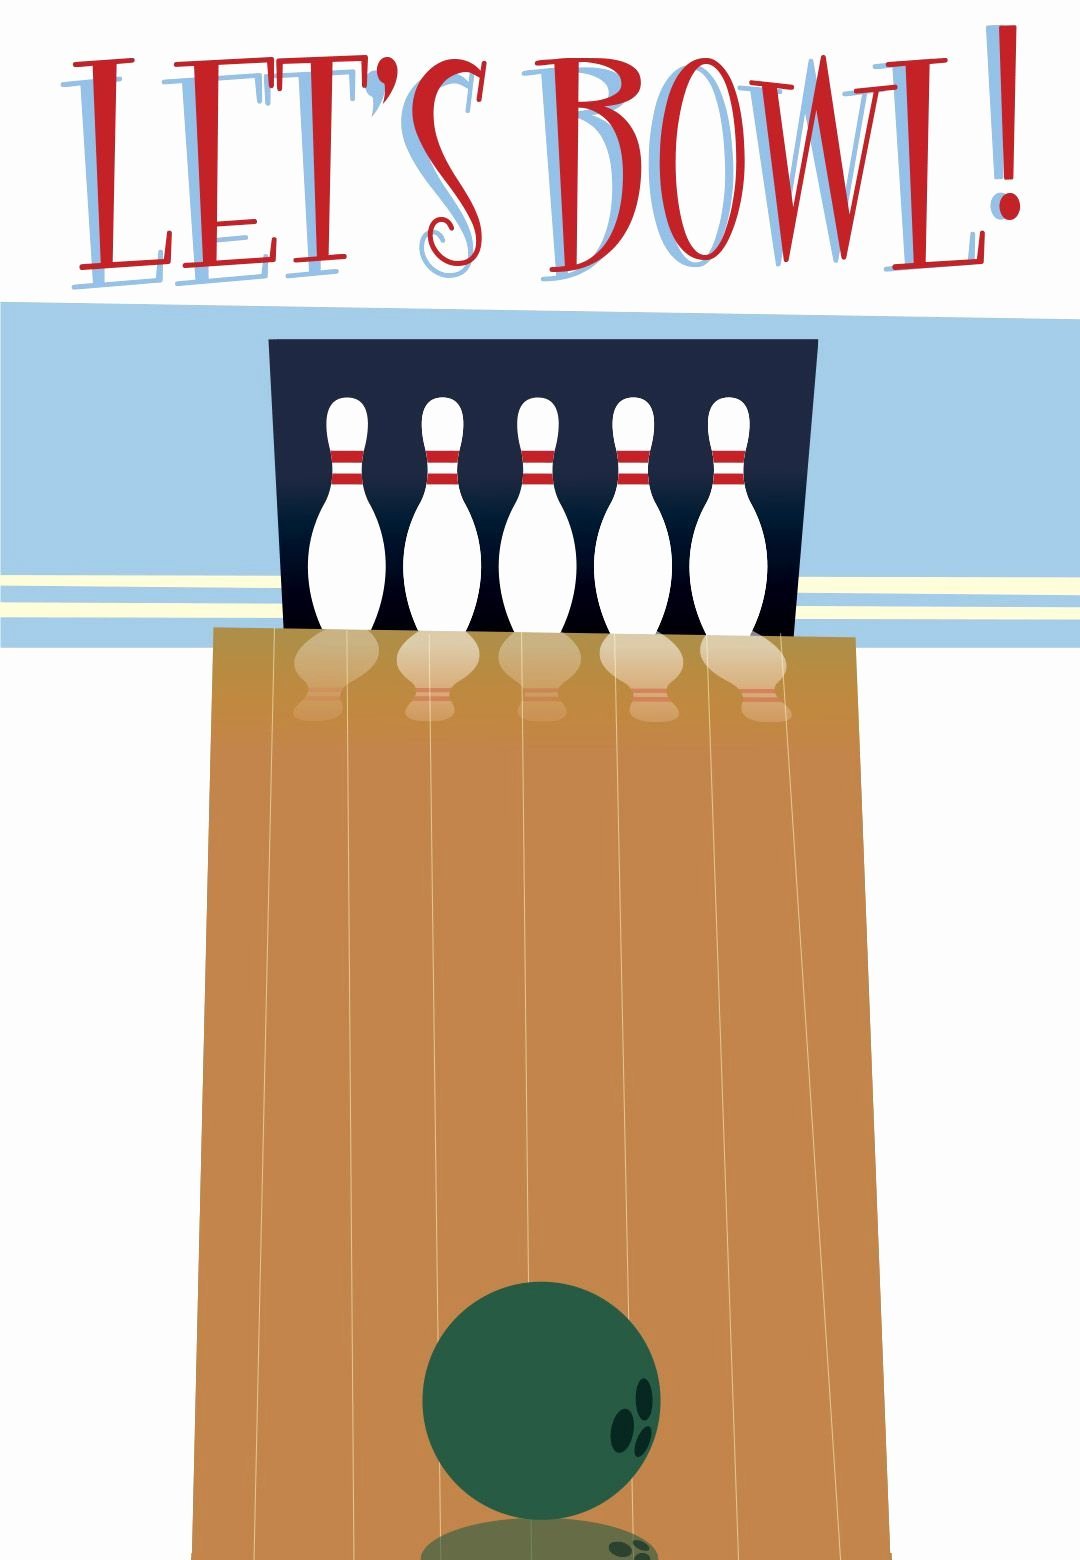 Bowling Party Invitation Templates Awesome Free Printable Bowling Party Invitation Super Cute for